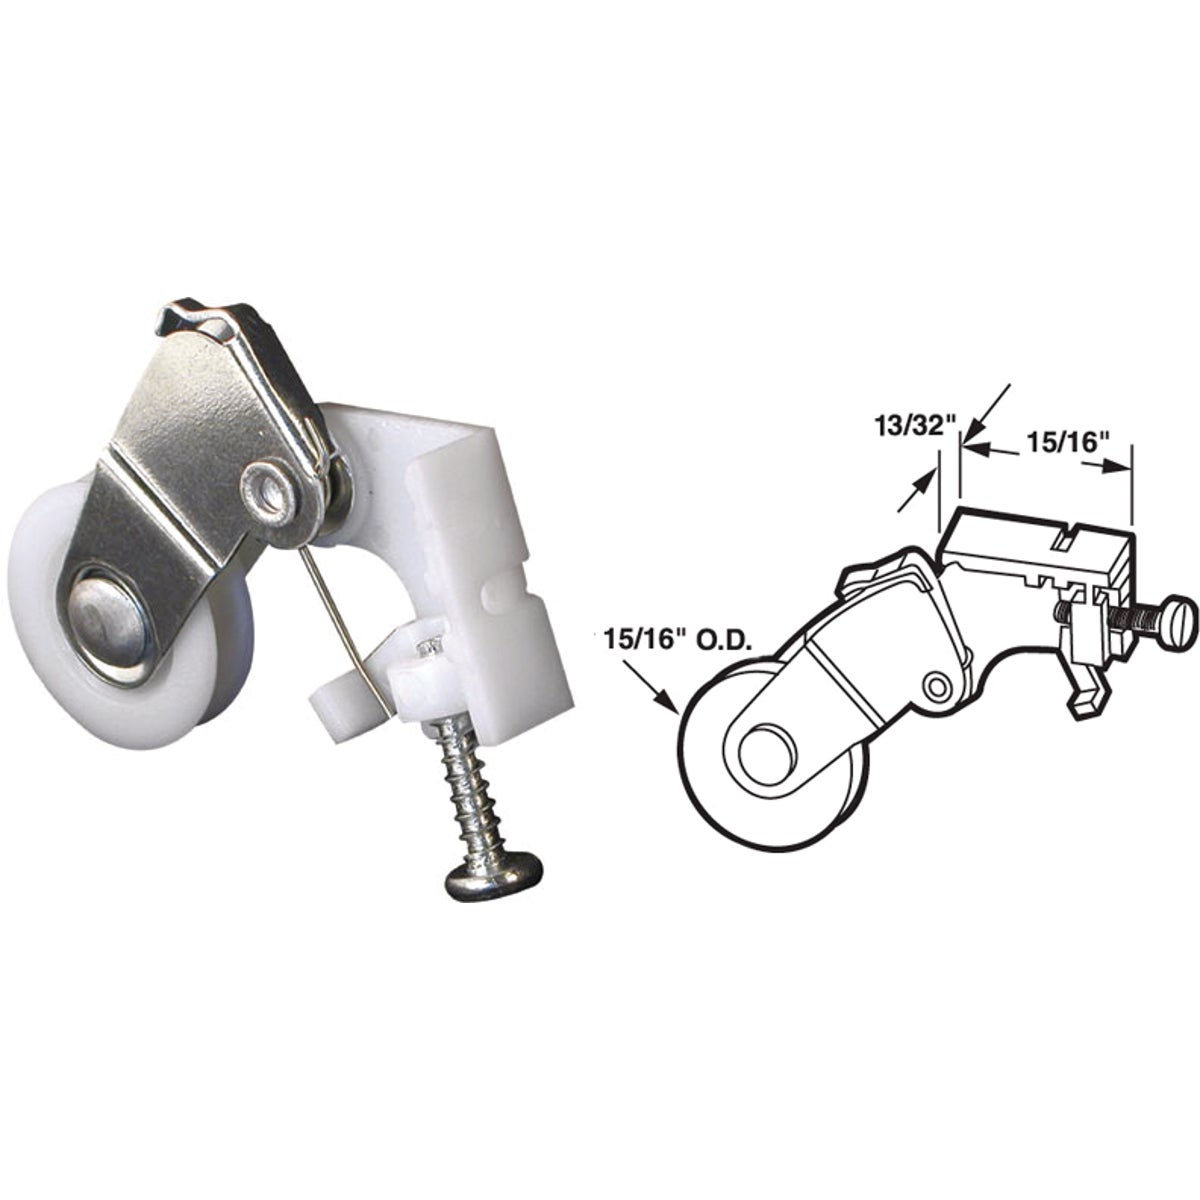 SLD DOOR ROLLER ASSEMBLY - 111770 by Prime Line Products